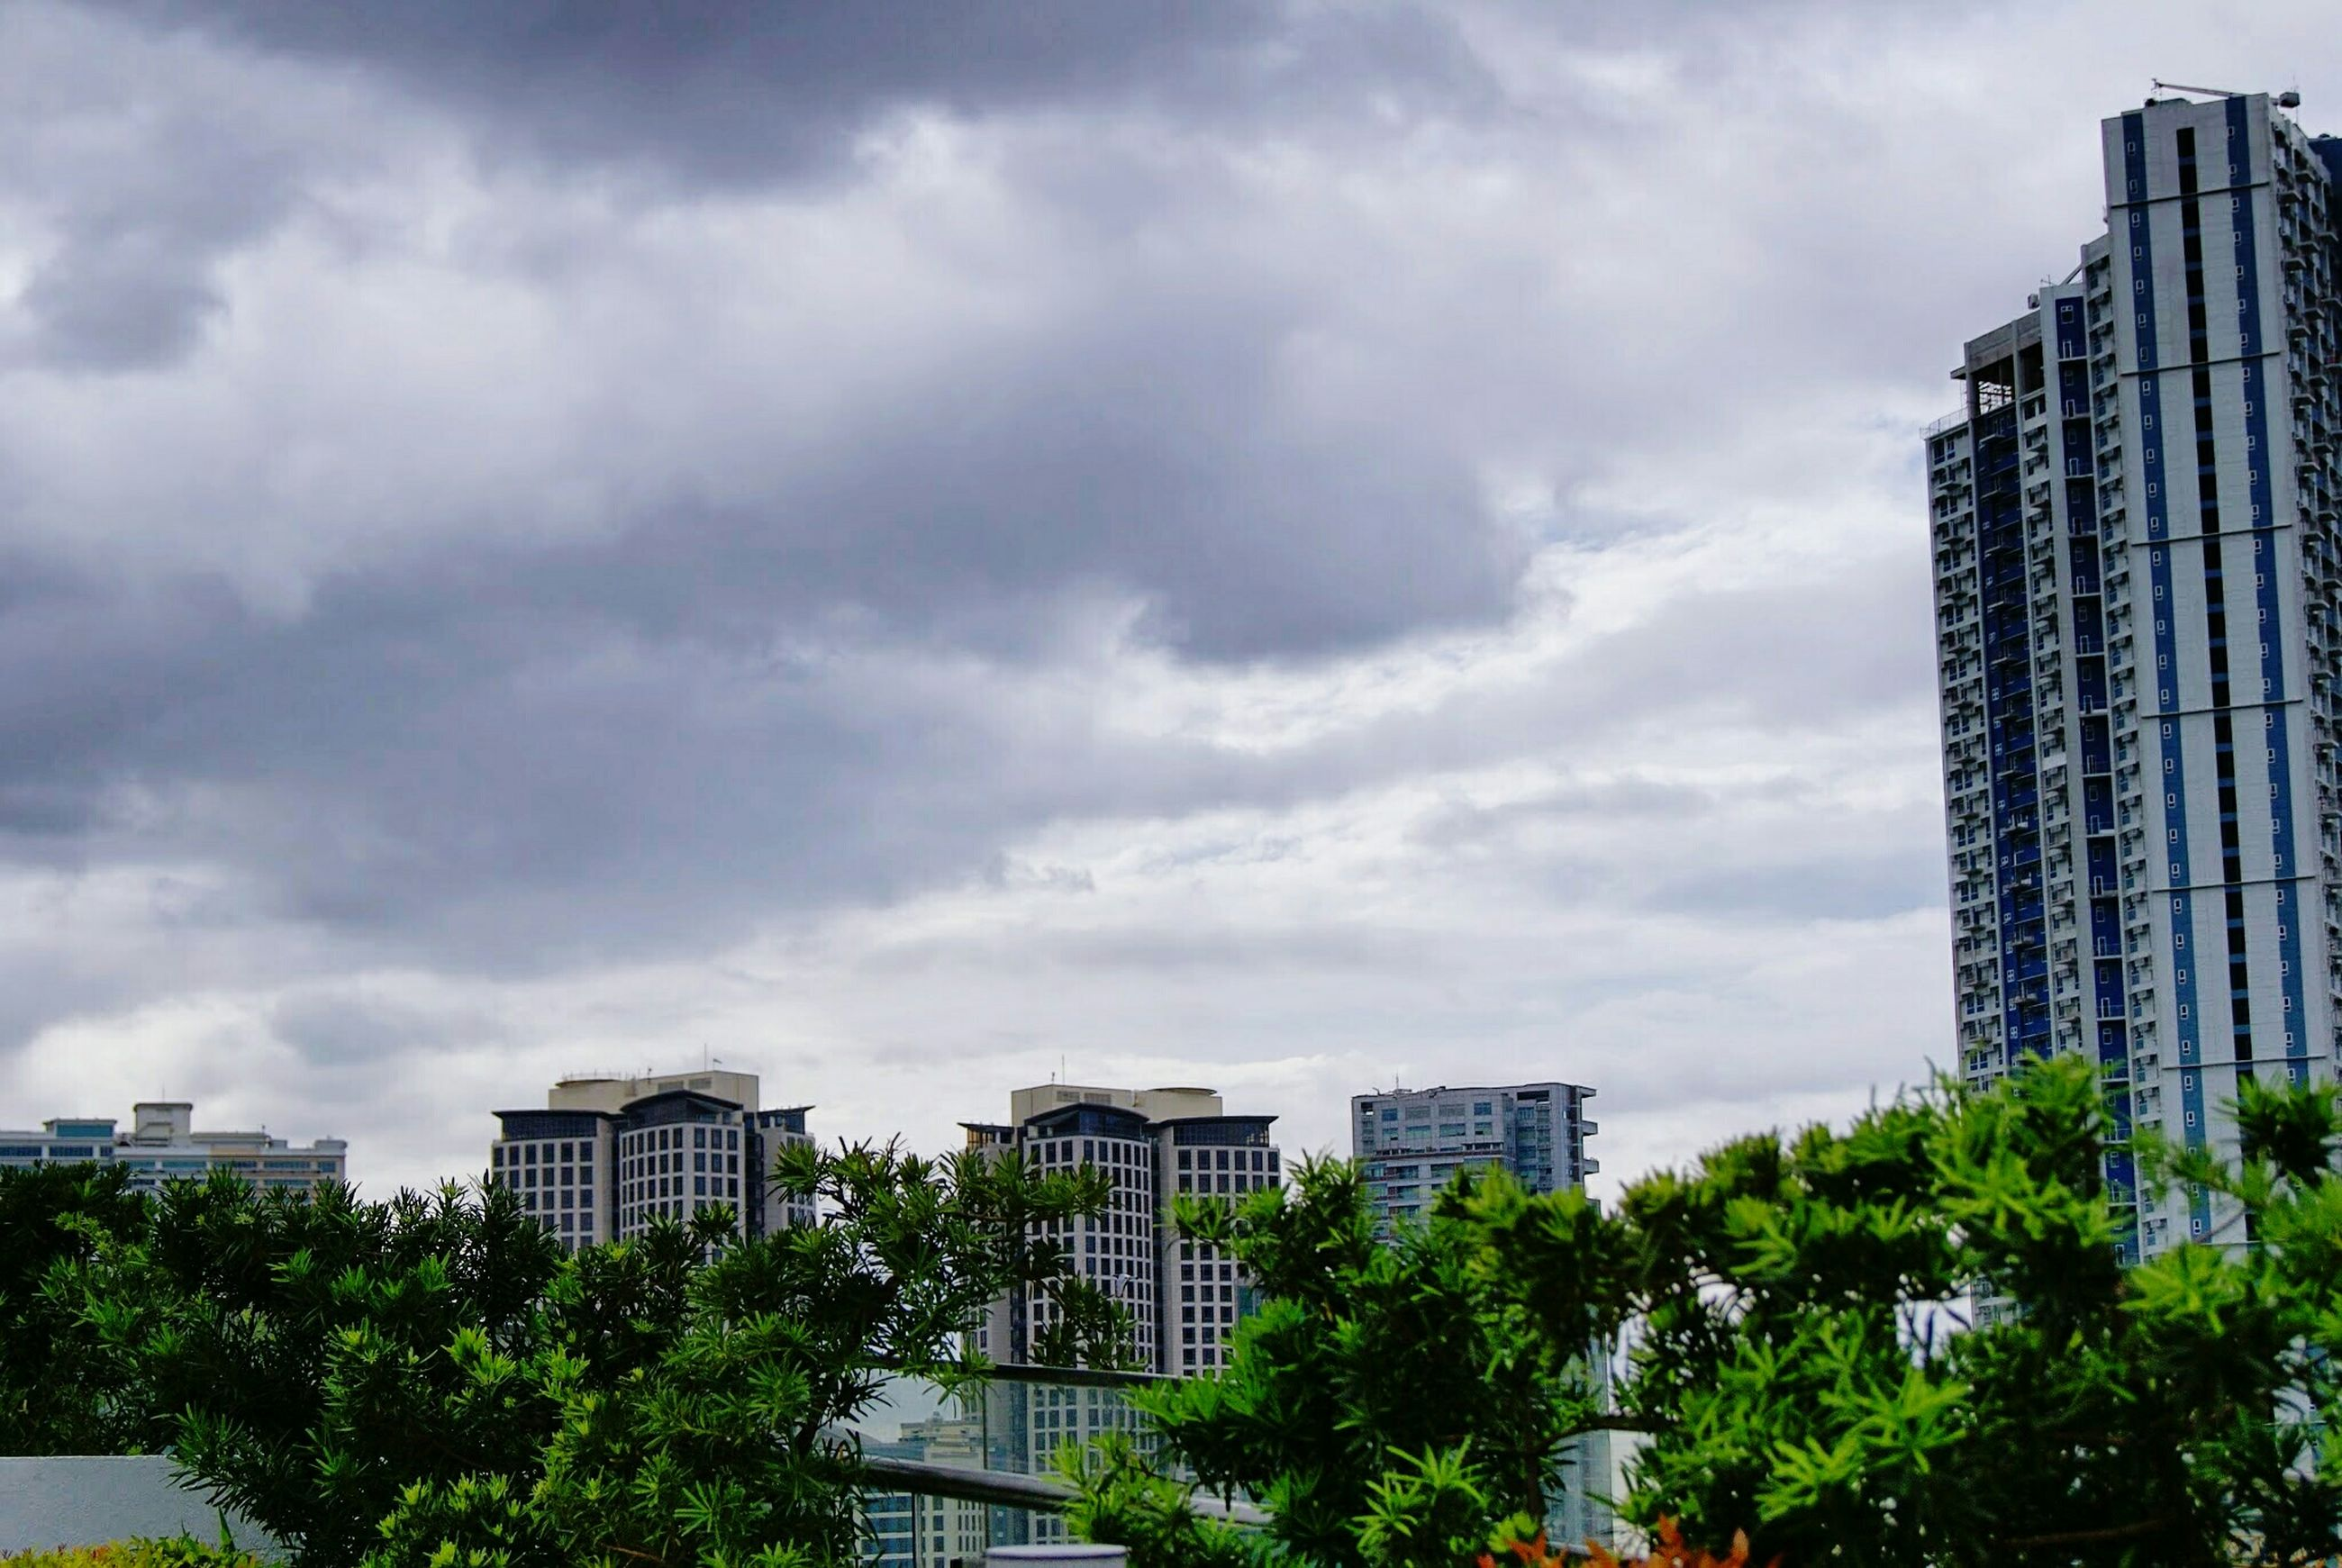 building exterior, architecture, built structure, city, sky, tree, cloud - sky, cloudy, skyscraper, modern, office building, building, low angle view, tall - high, residential building, cloud, cityscape, city life, residential structure, tower